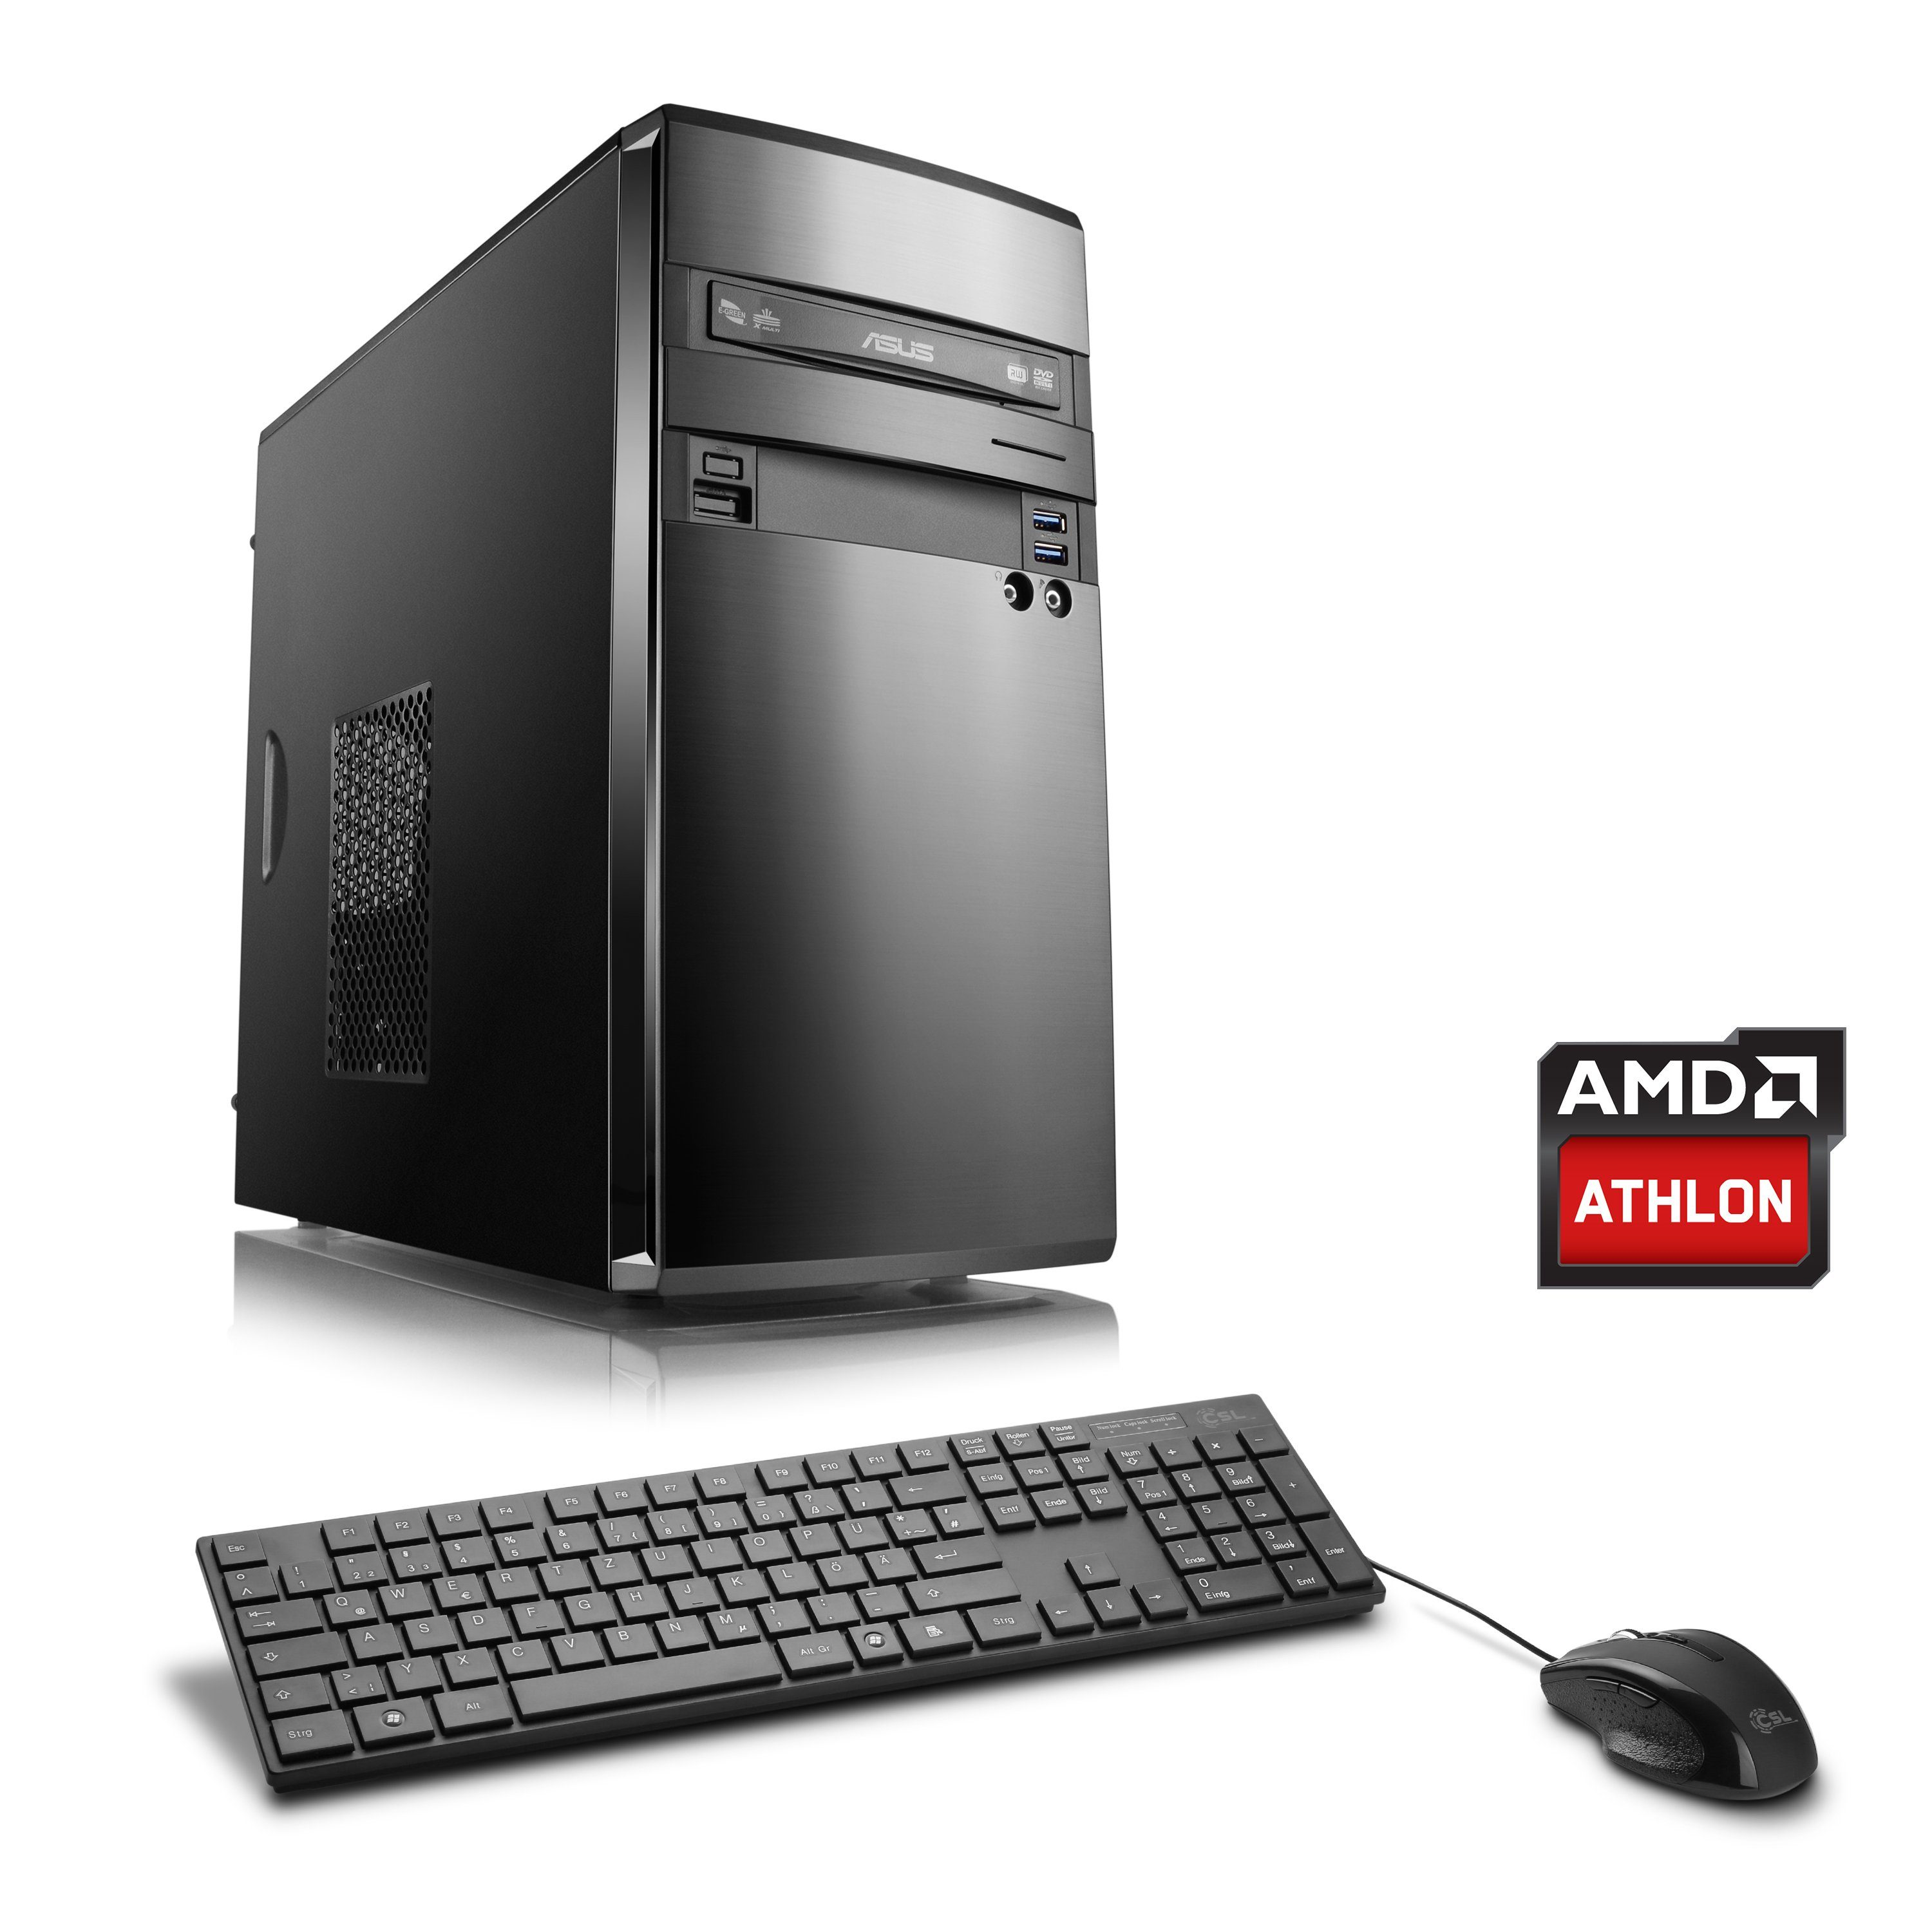 CSL Gaming PC | AMD Athlon X4 845 | AMD RX 460 | 8 GB RAM »Sprint T4832 Windows 10 Home«